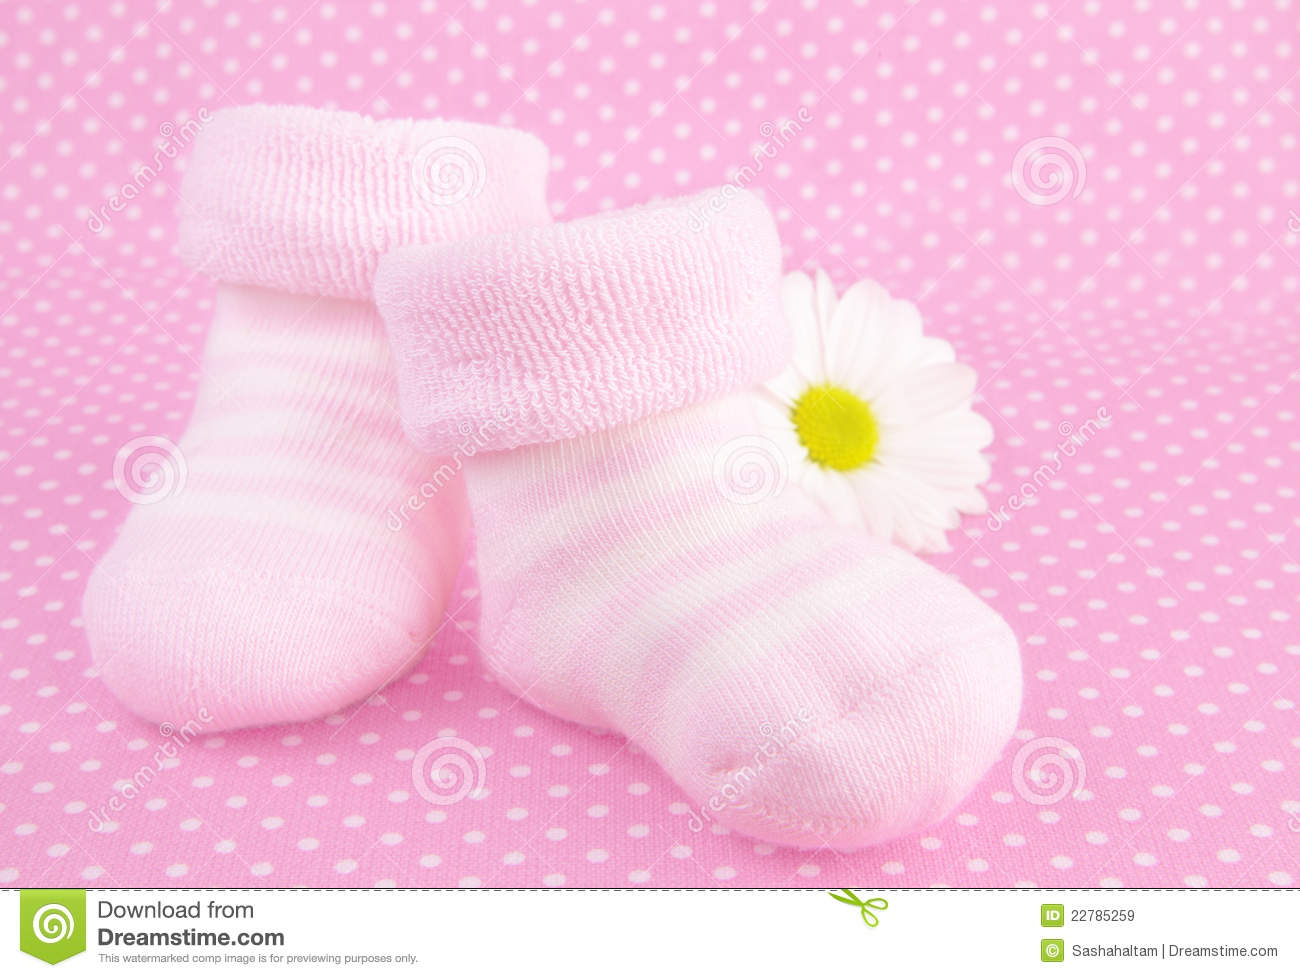 pink baby girl knitted socks or shoes stock image image of close